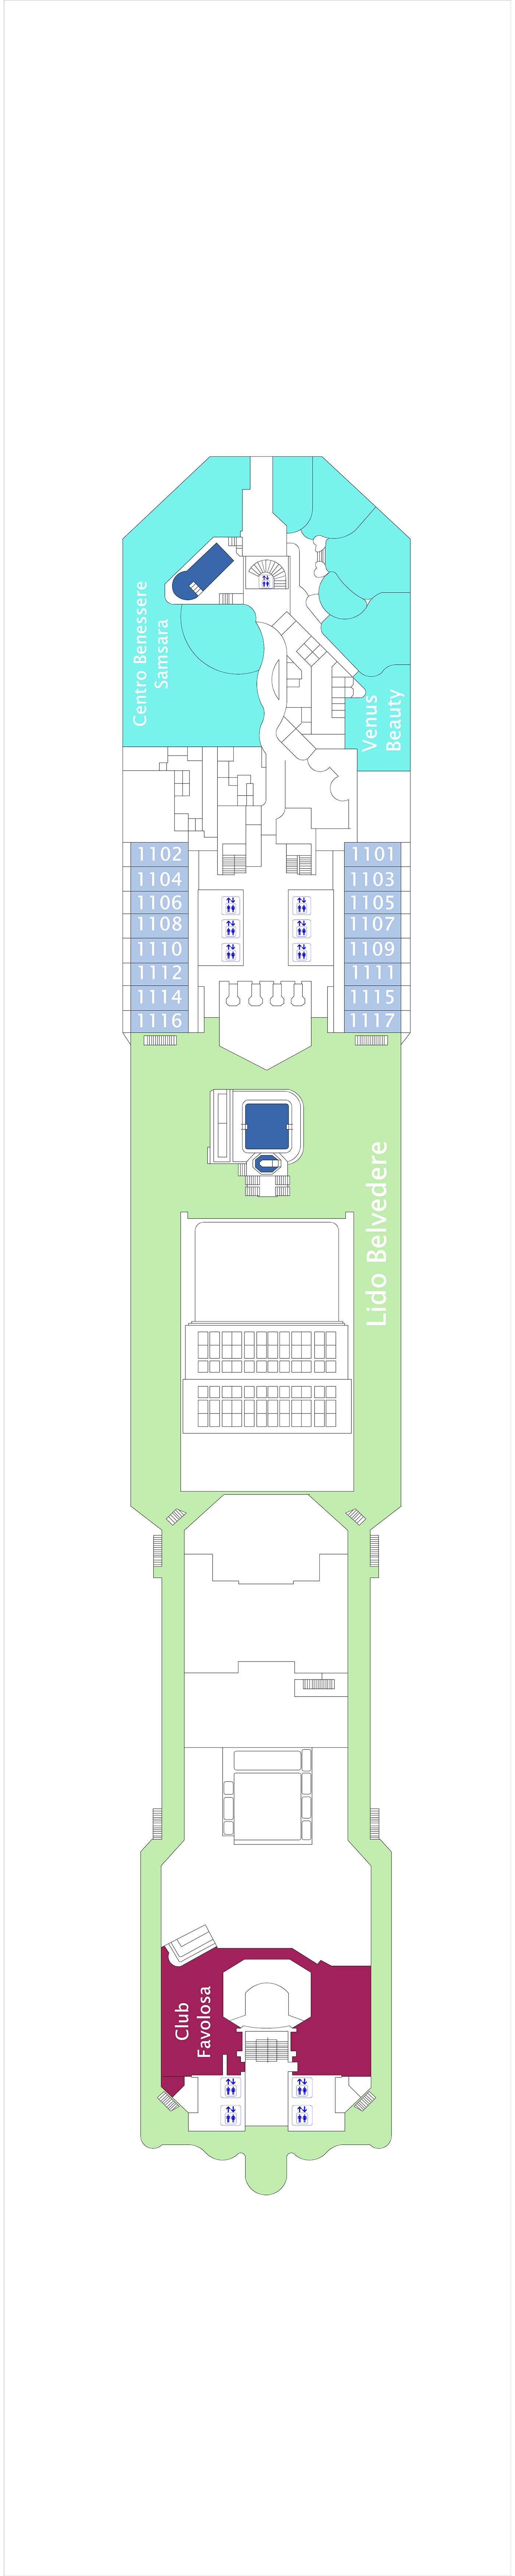 Costa Favolosa deck plan 11